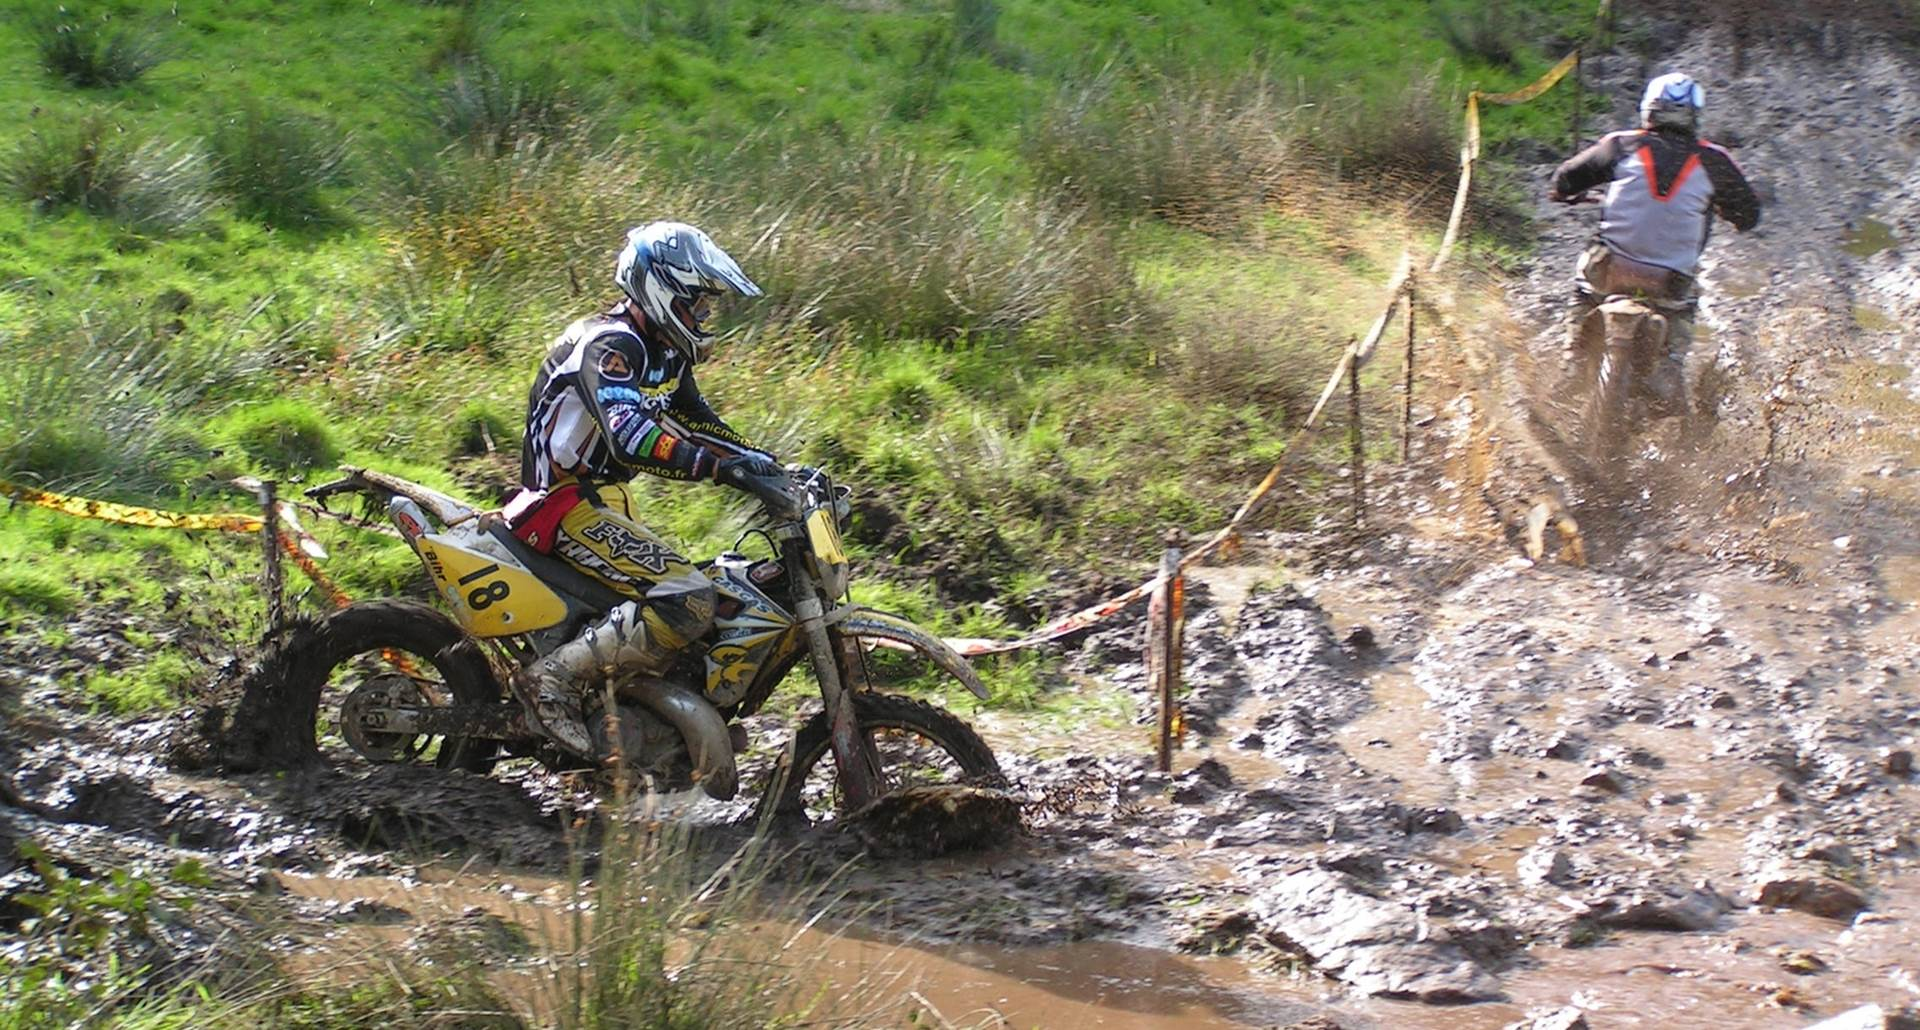 sejour moto enduro - moto cross - hébergement Le Ranch des Lacs - photo B.Barlet.